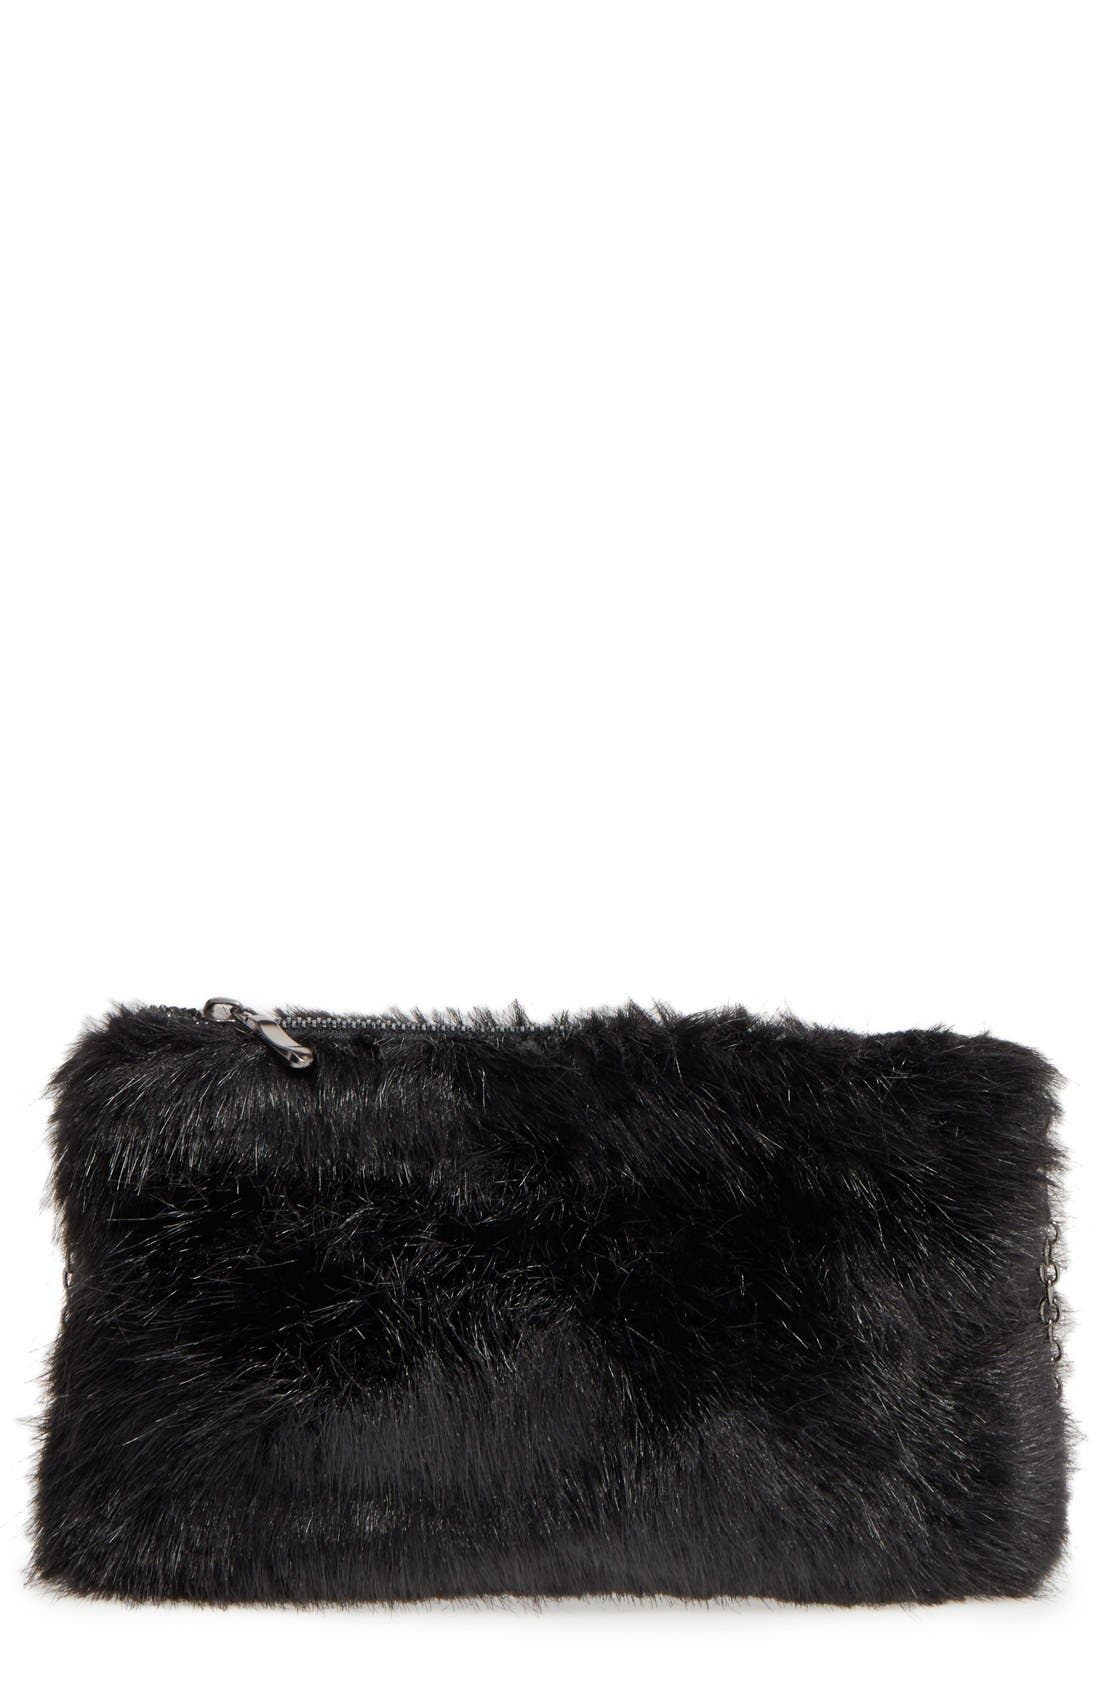 Main Image - BP. Faux Fur Clutch